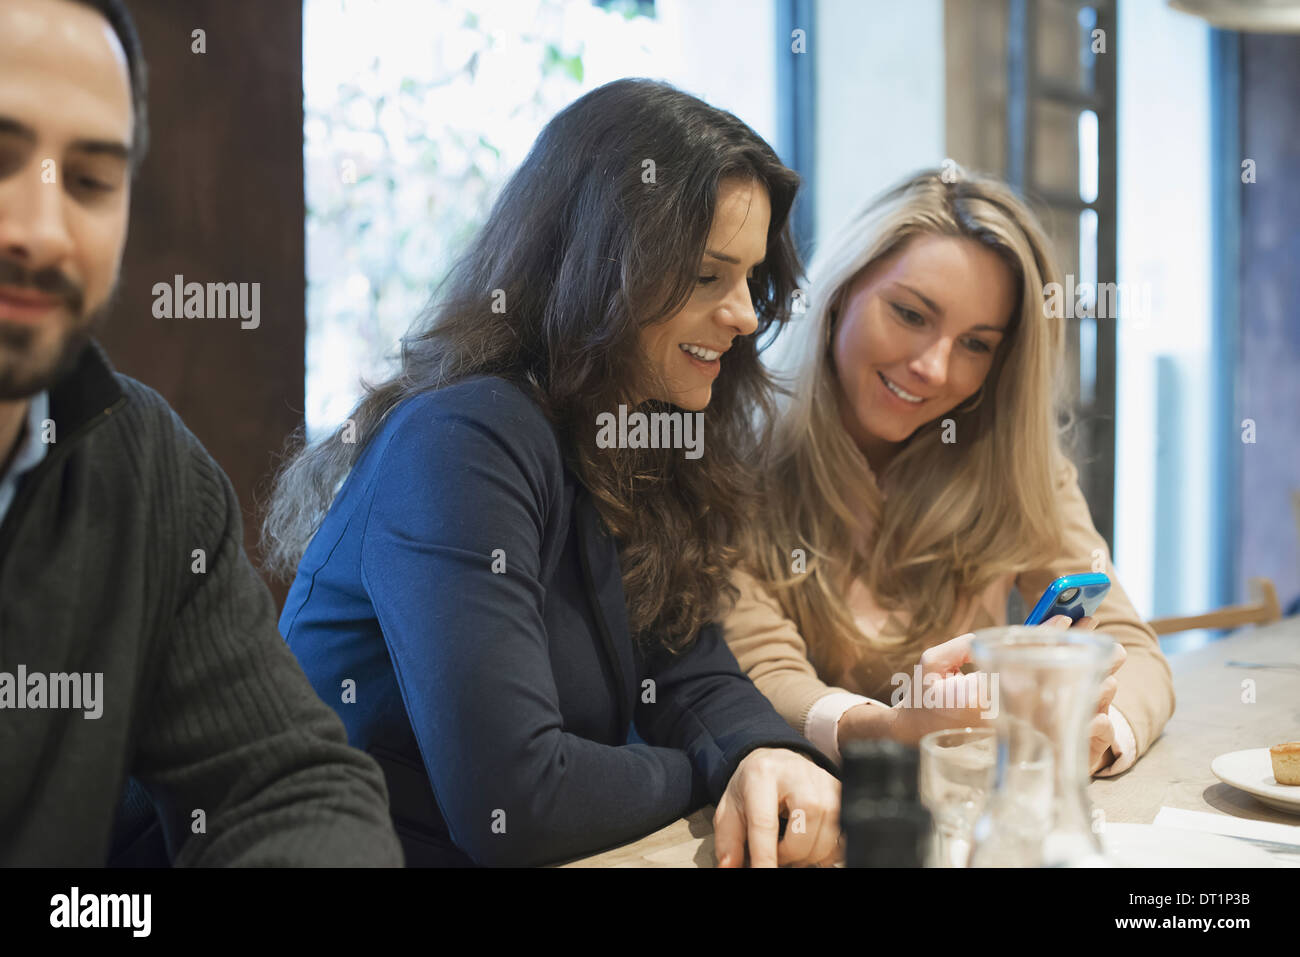 Women sharing text at restaurant table - Stock Image